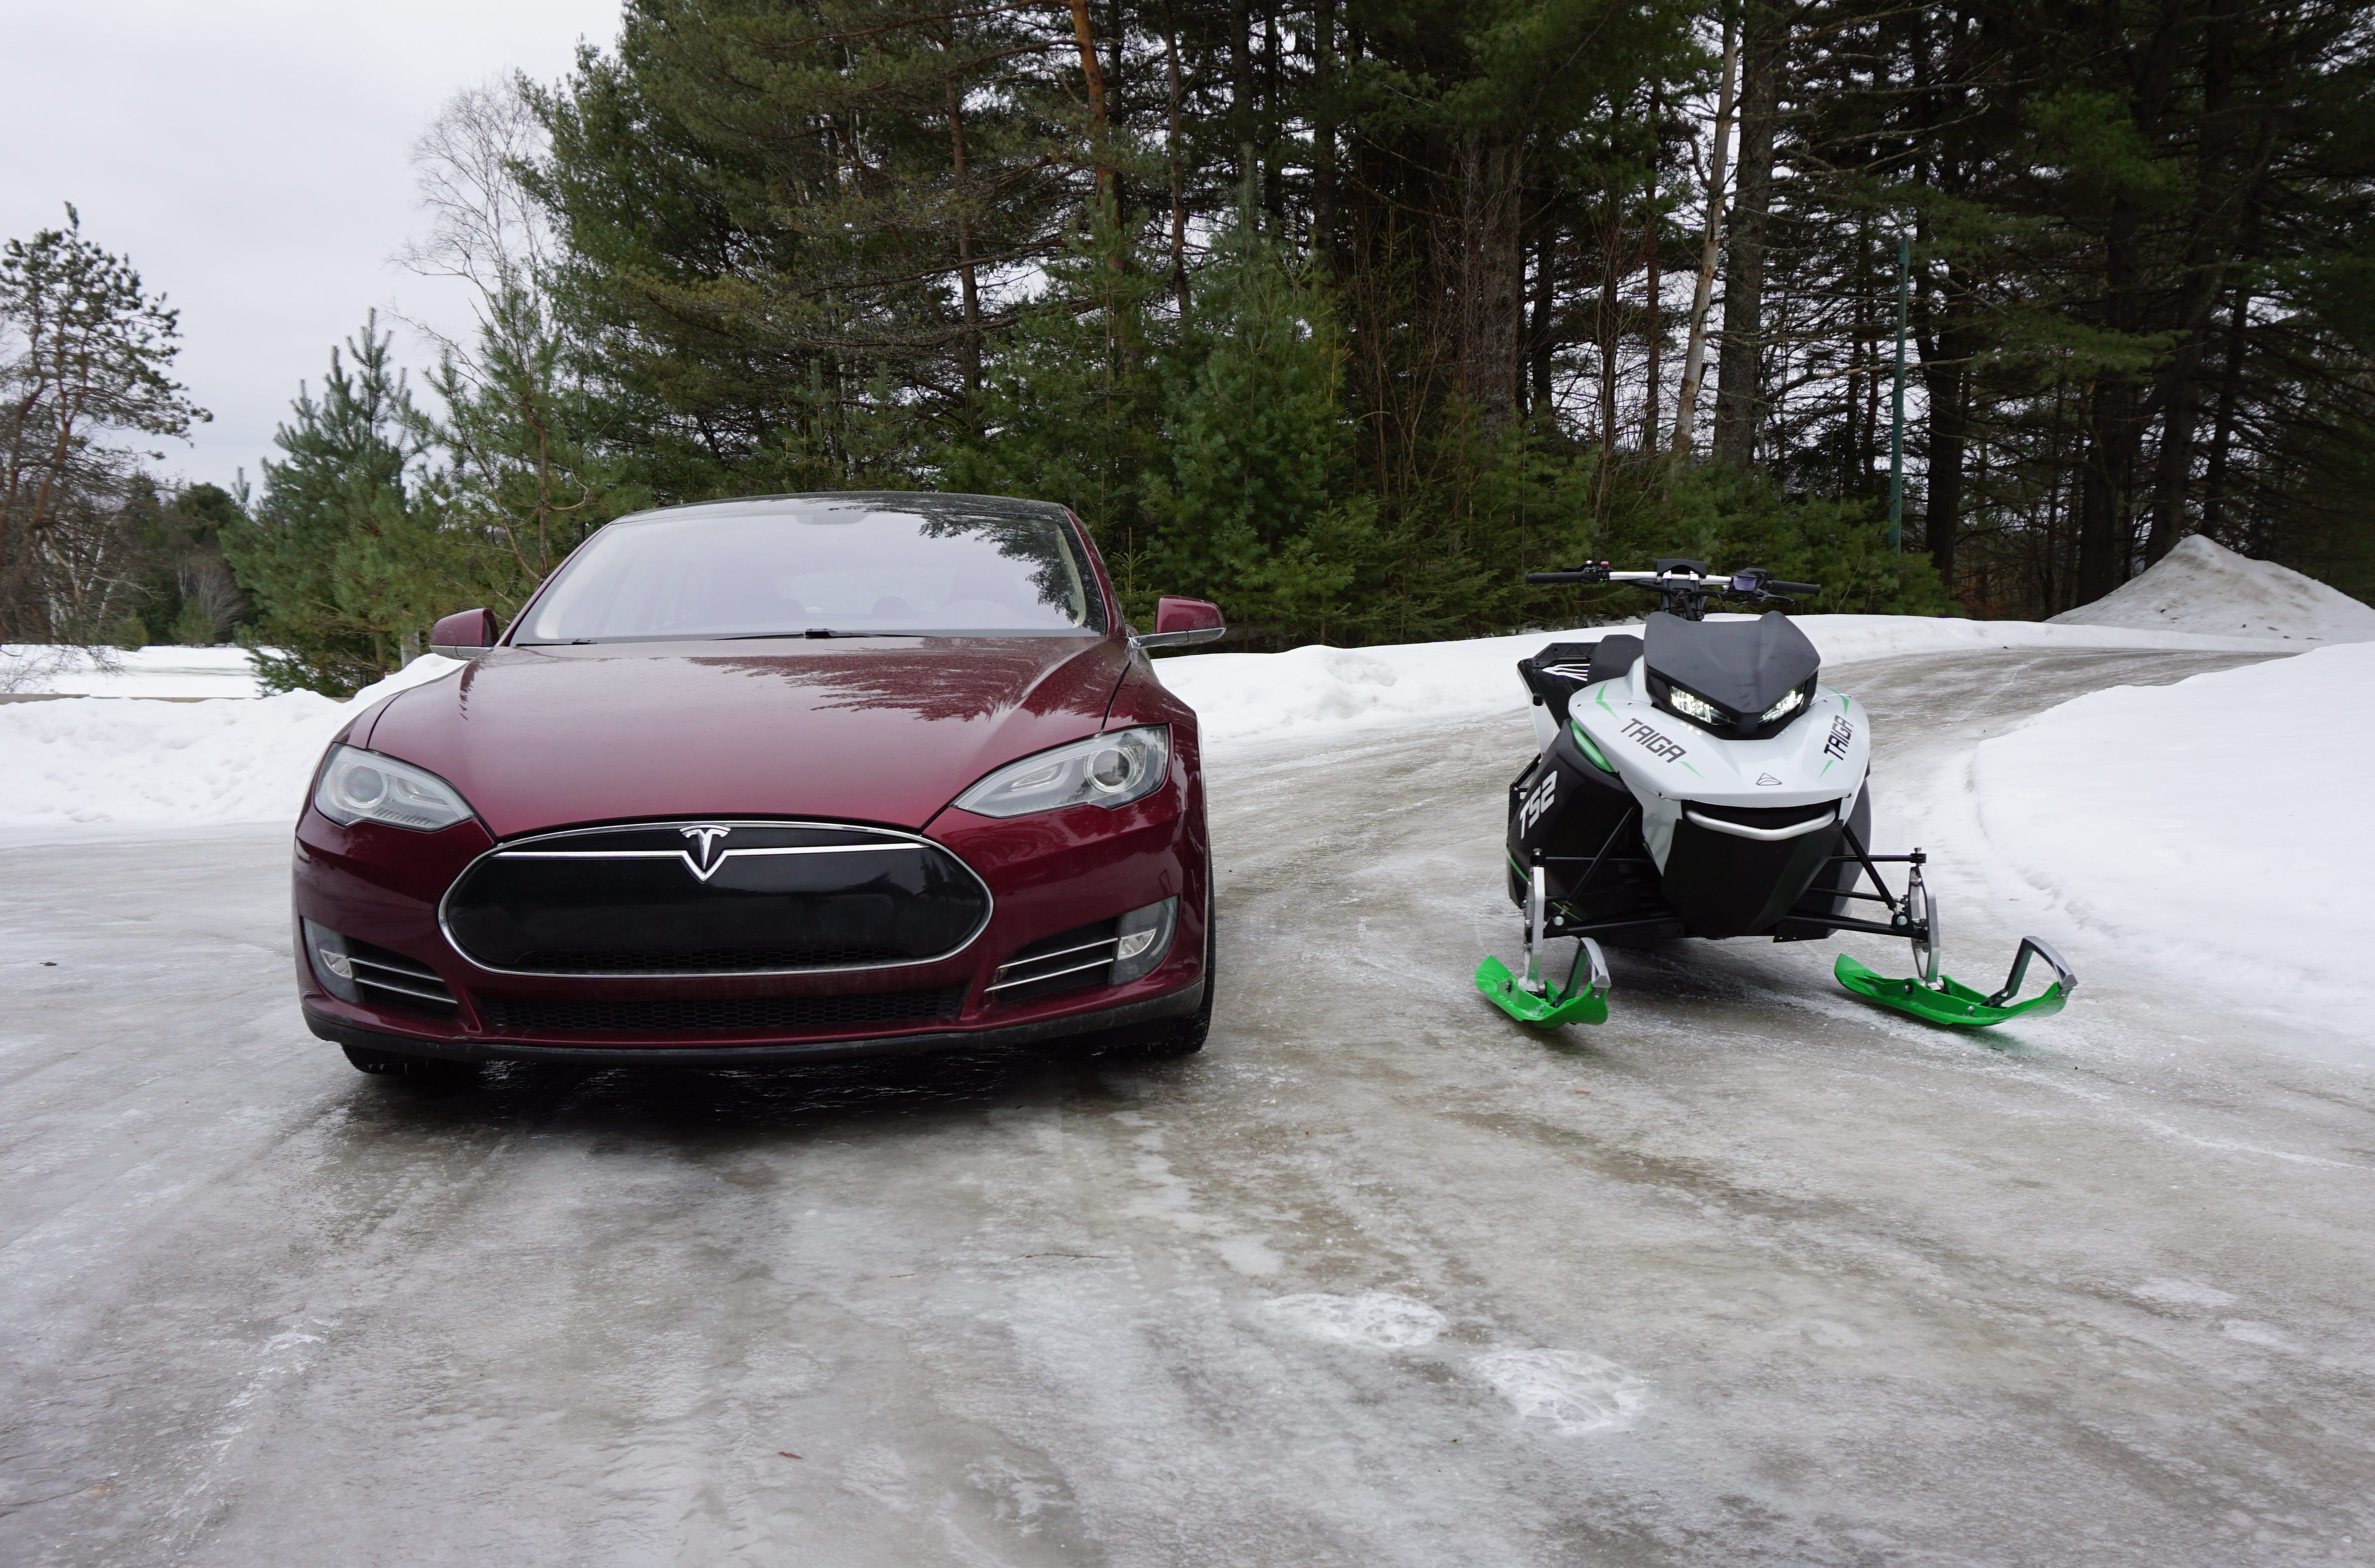 Tesla-inspired Taiga electric snowmobile does 0-60 mph in 3 seconds